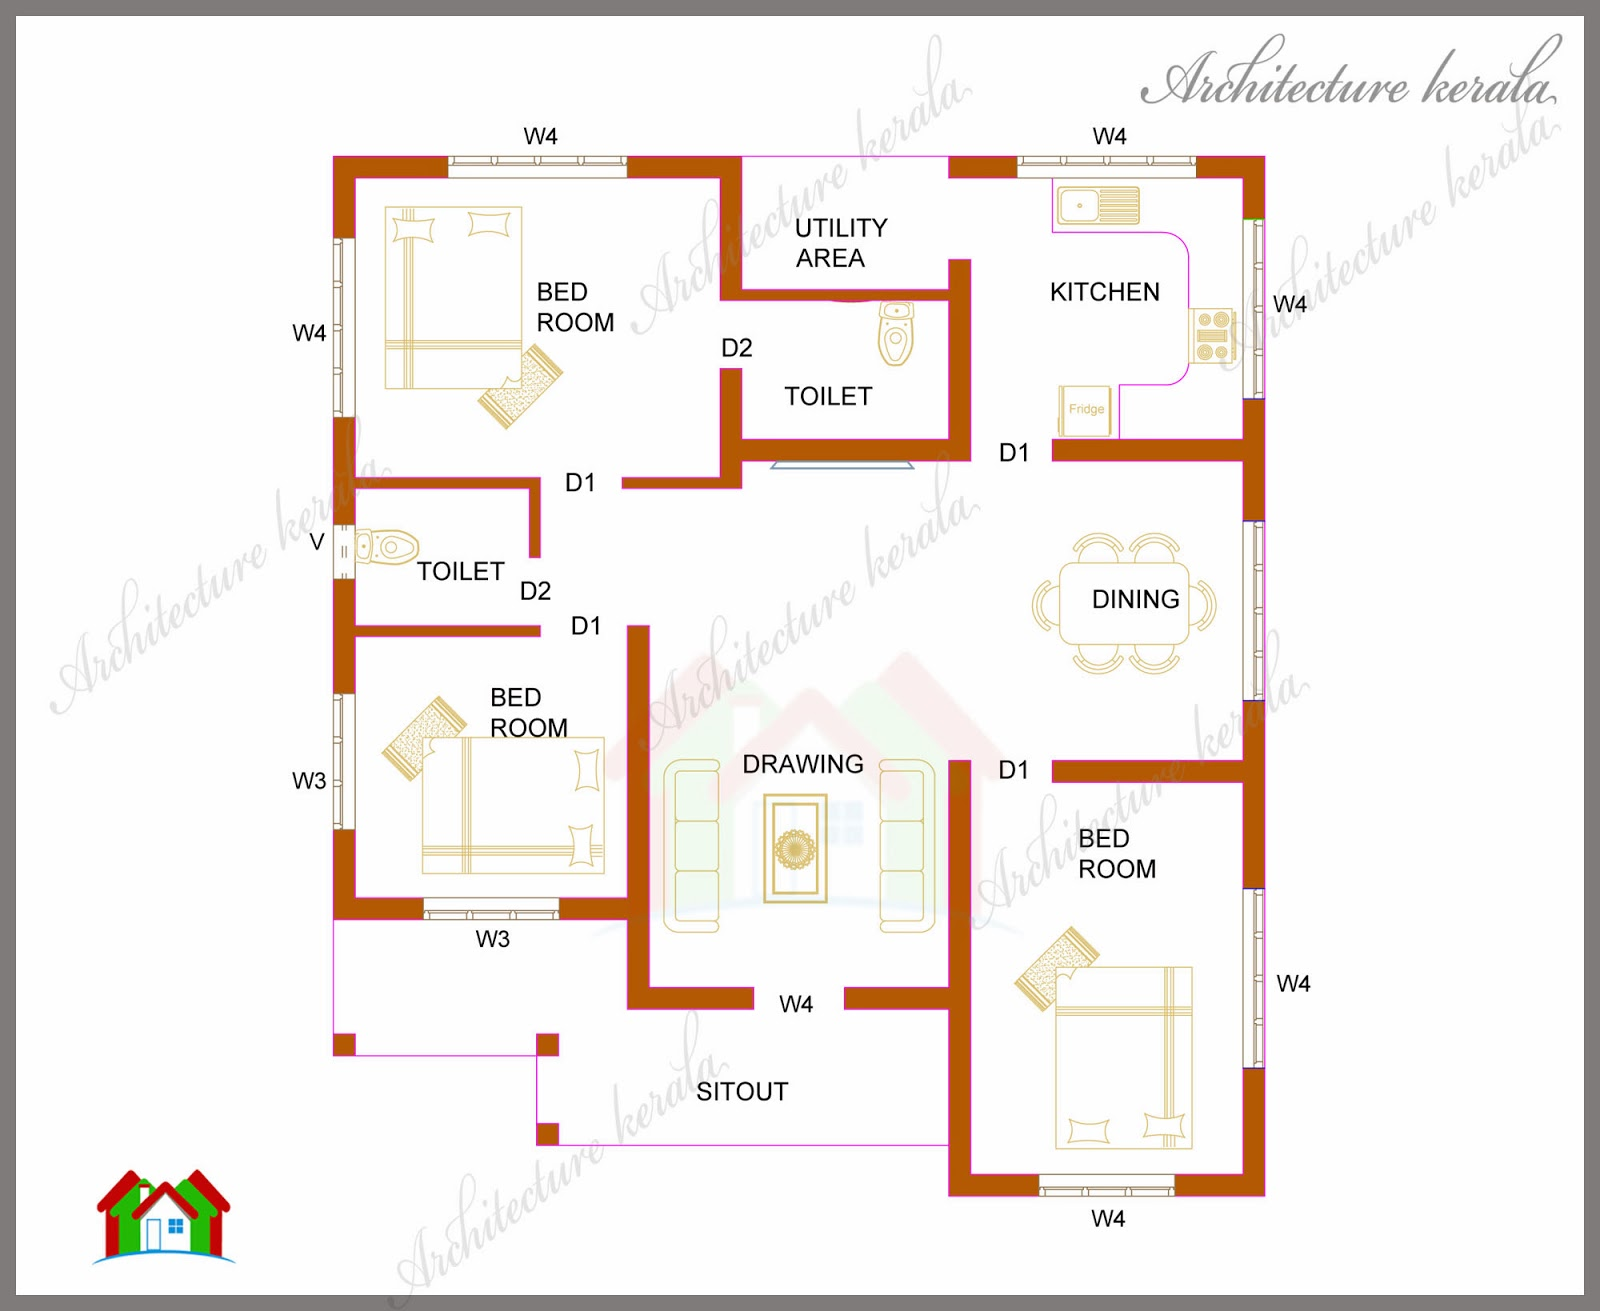 Three Bedrooms In 1200 Square Feet Kerala House Plan Architecture